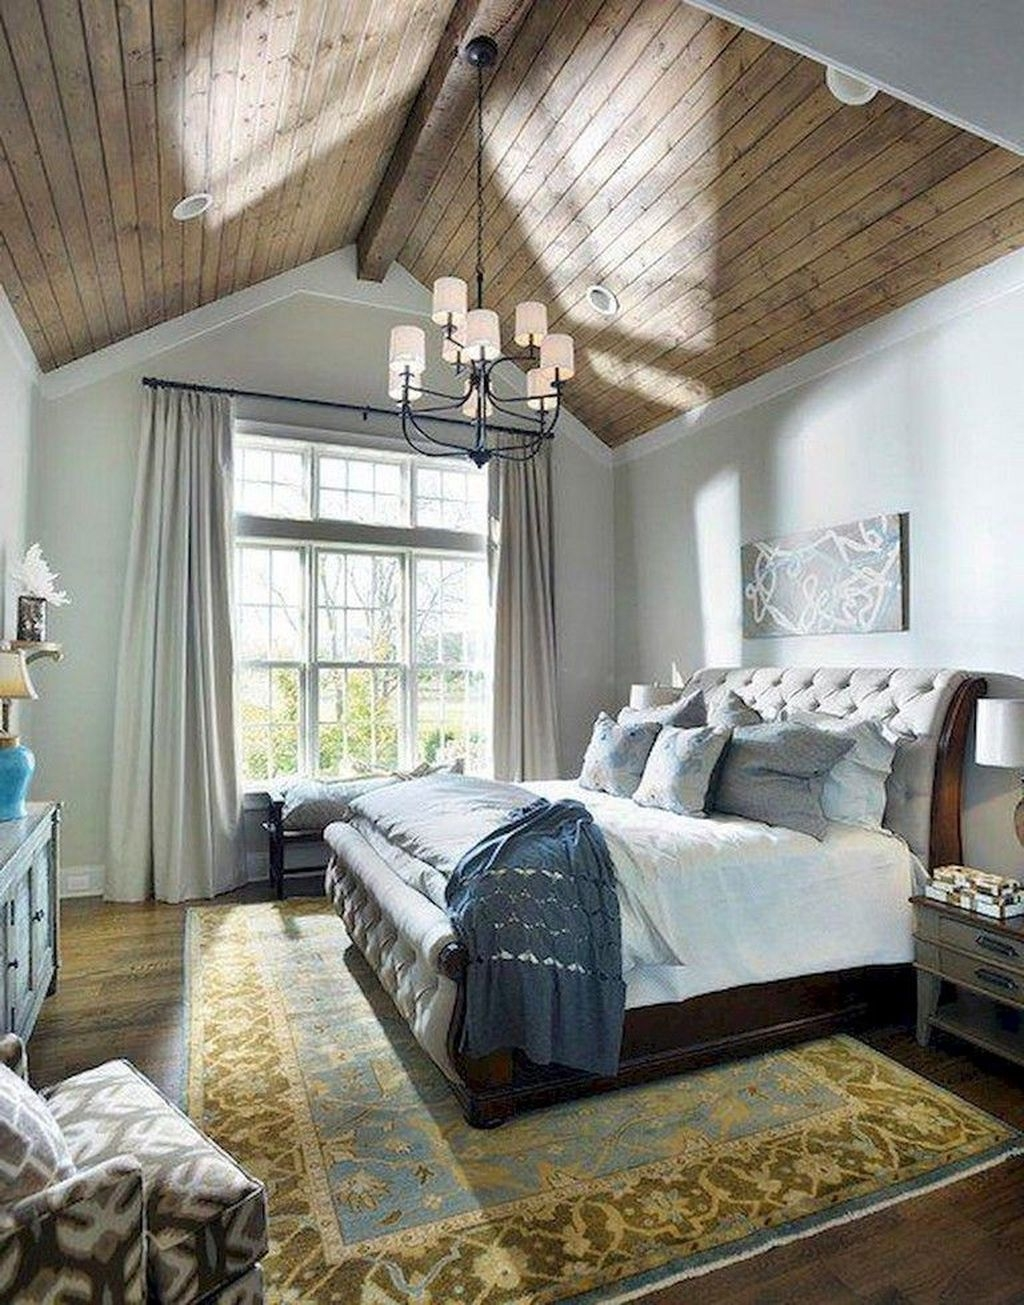 Cute Chandeliers Decoration Ideas For Your Bedroom14